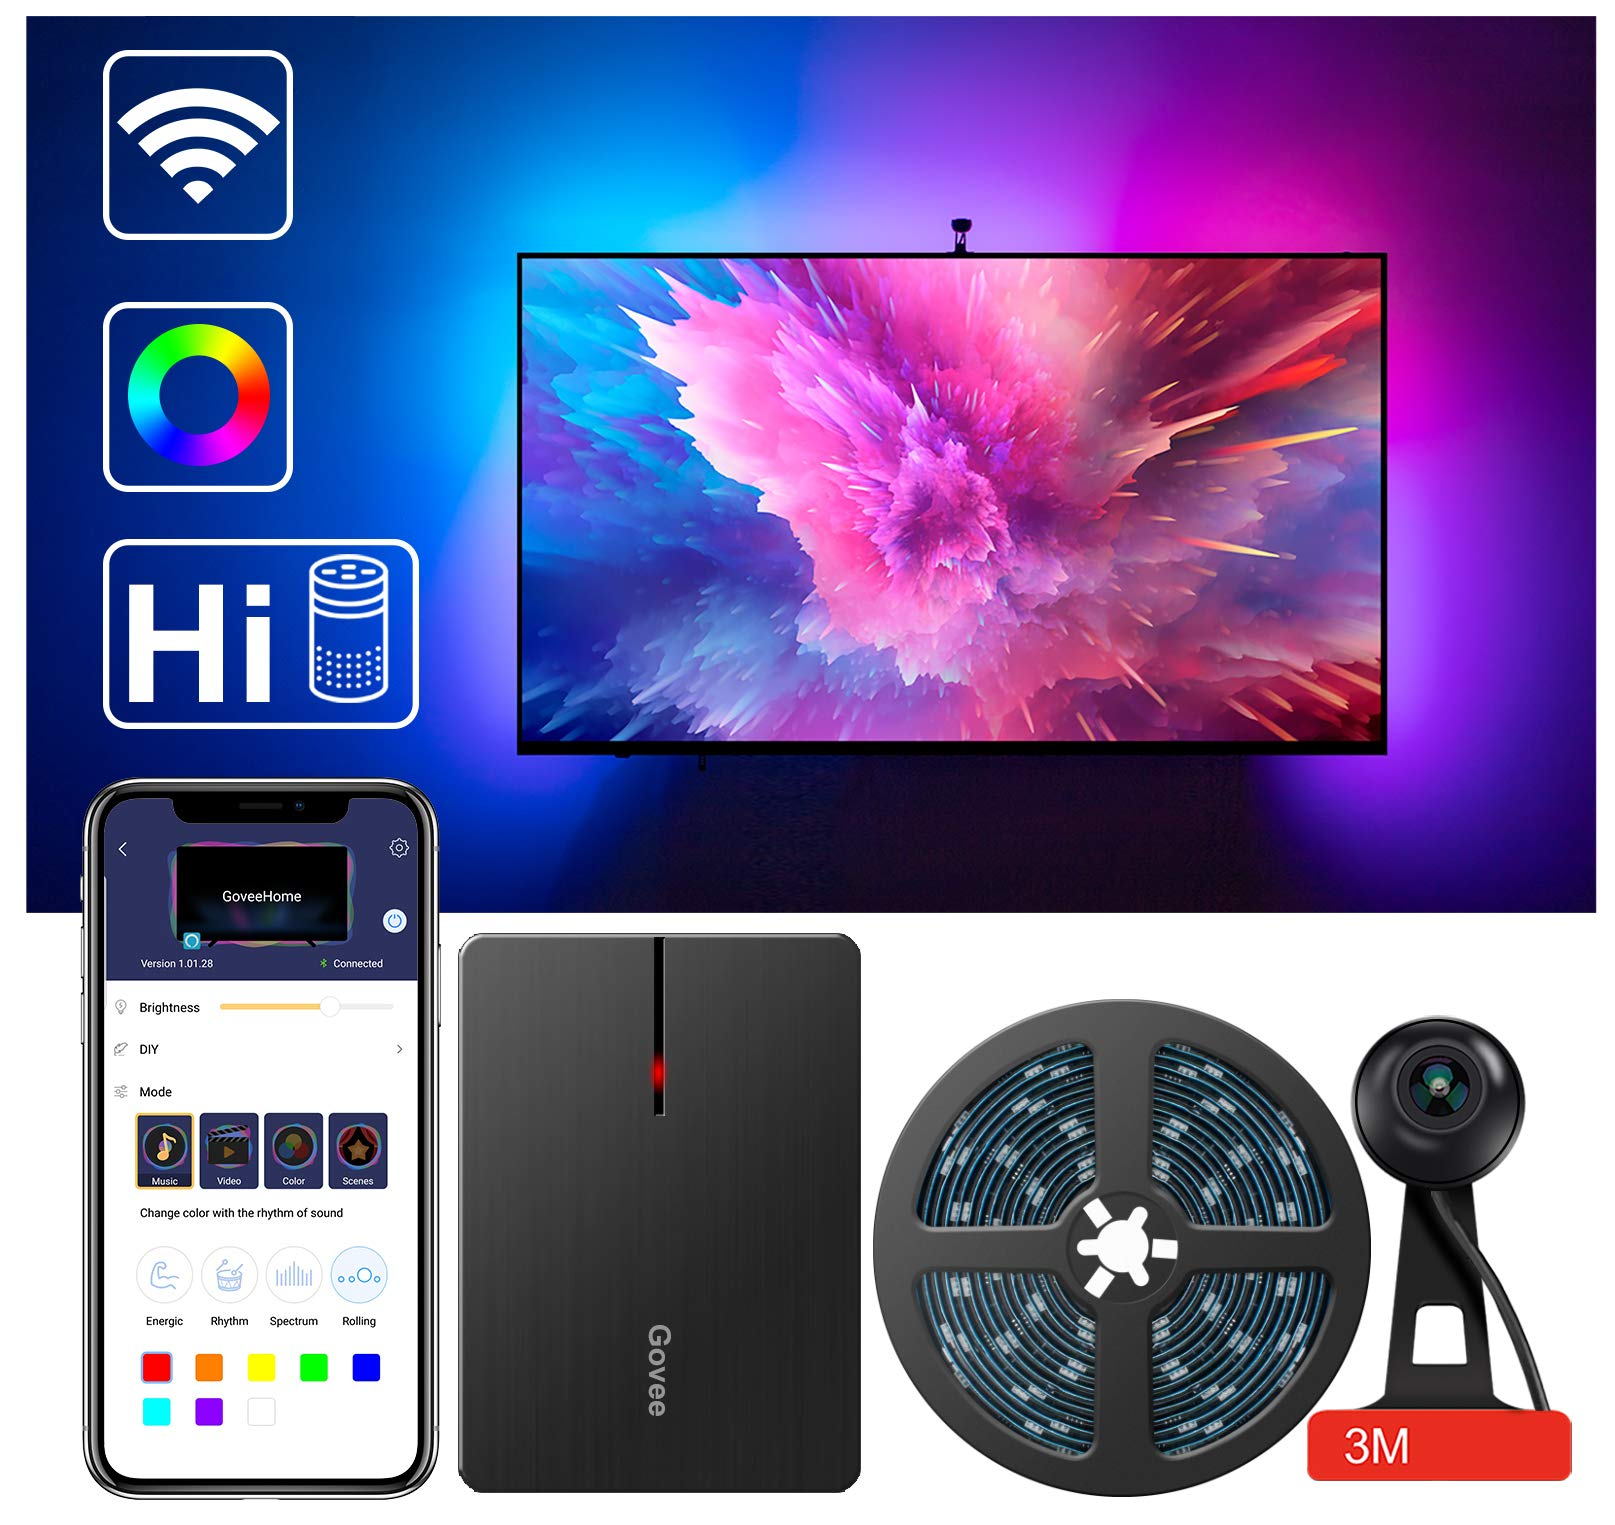 Govee LED TV Backlights, WiFi TV LED Strip Lights with Camera, Compatible with Alexa, App Control, RGBIC Music Sync, TV Ambient Bias Lighting for 55-65 inch TVs, Calibrate on App